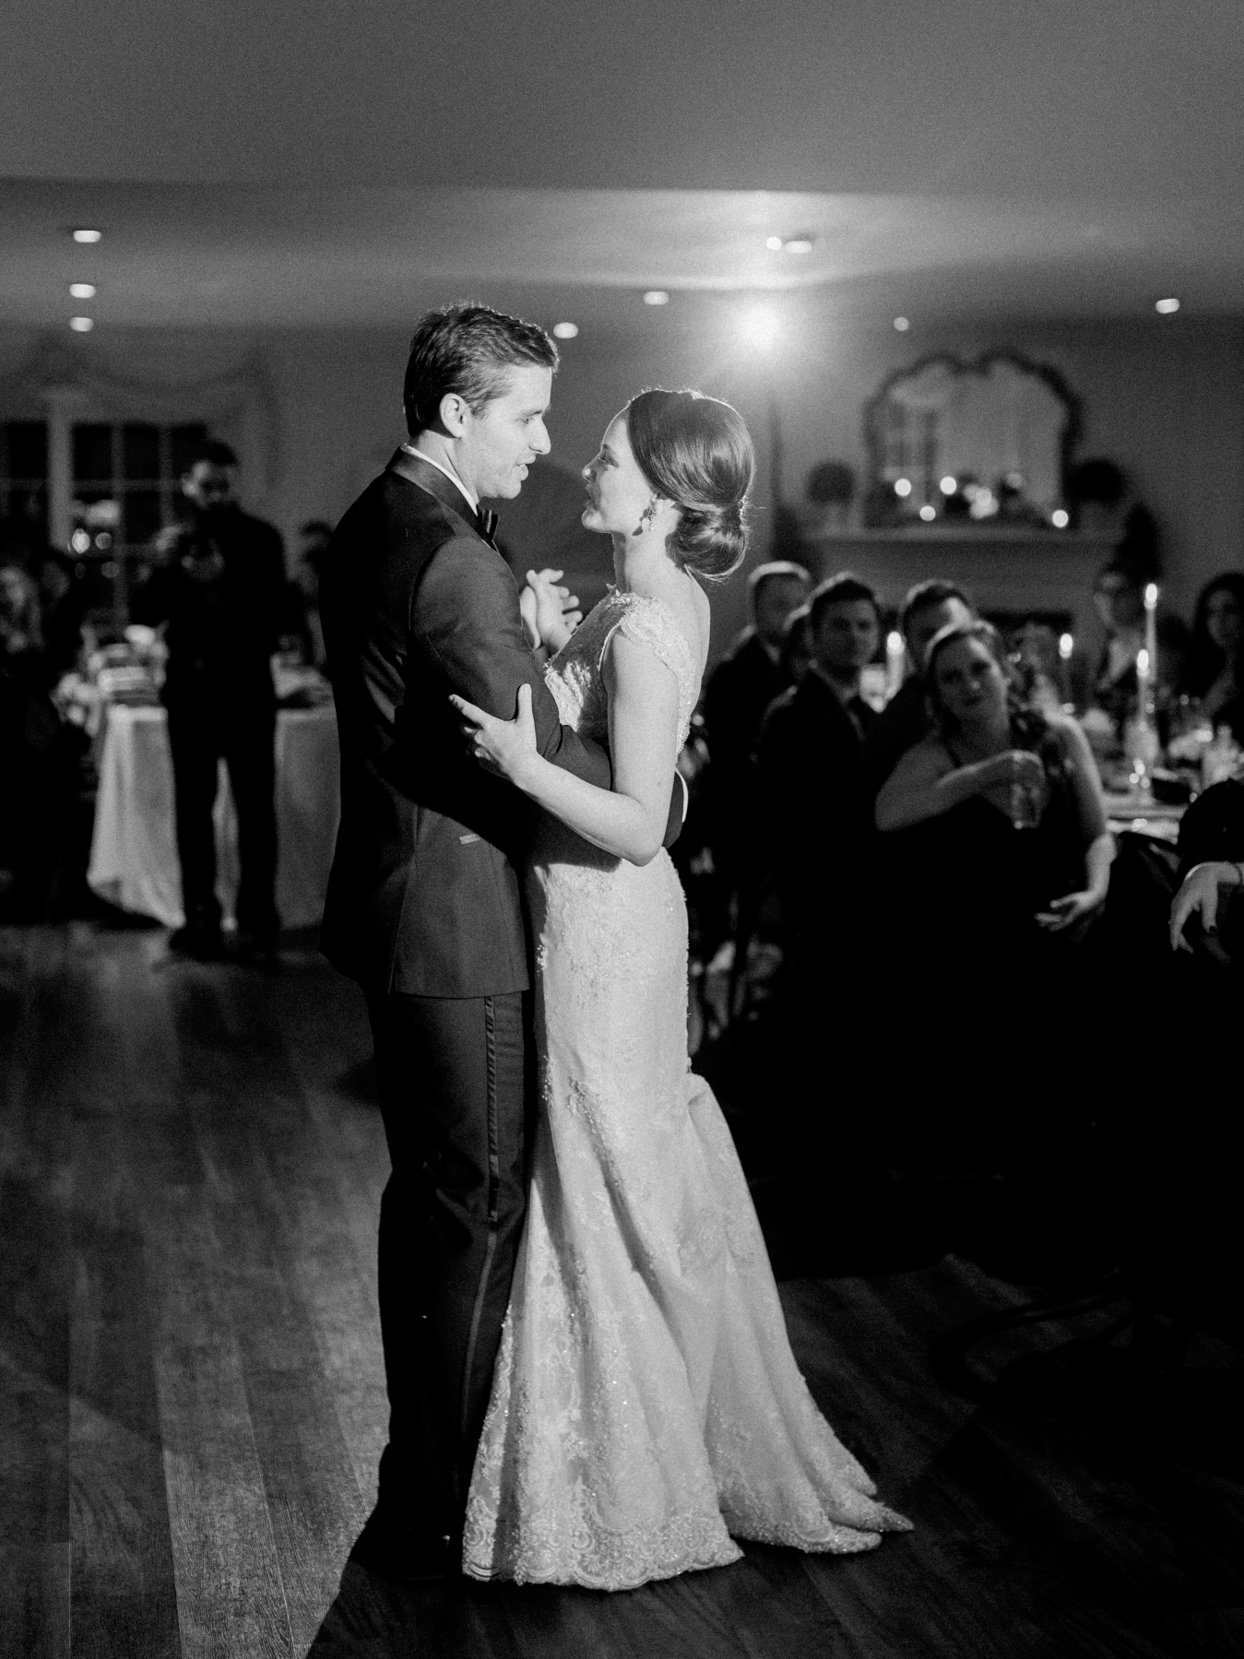 wedding couple first dance under the lights indoors